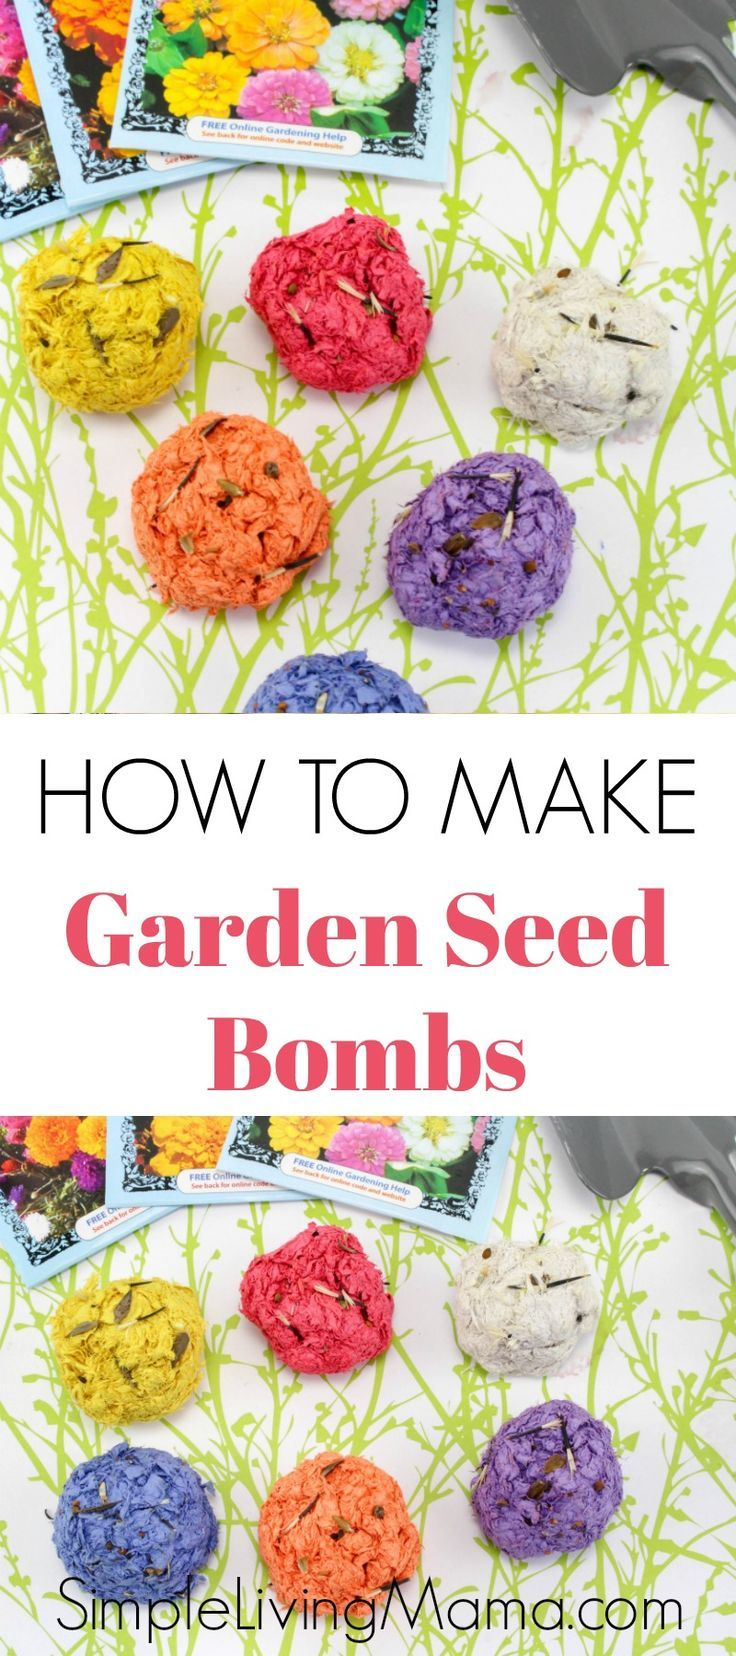 How To Make Garden Seed Bombs Gardening Pinterest Seed Bombs